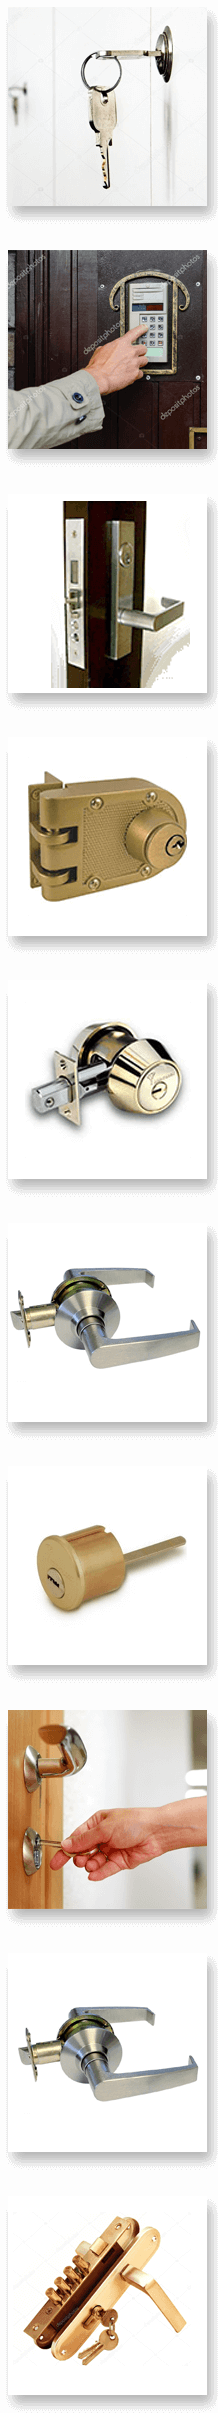 Mobile - Commercial Locks